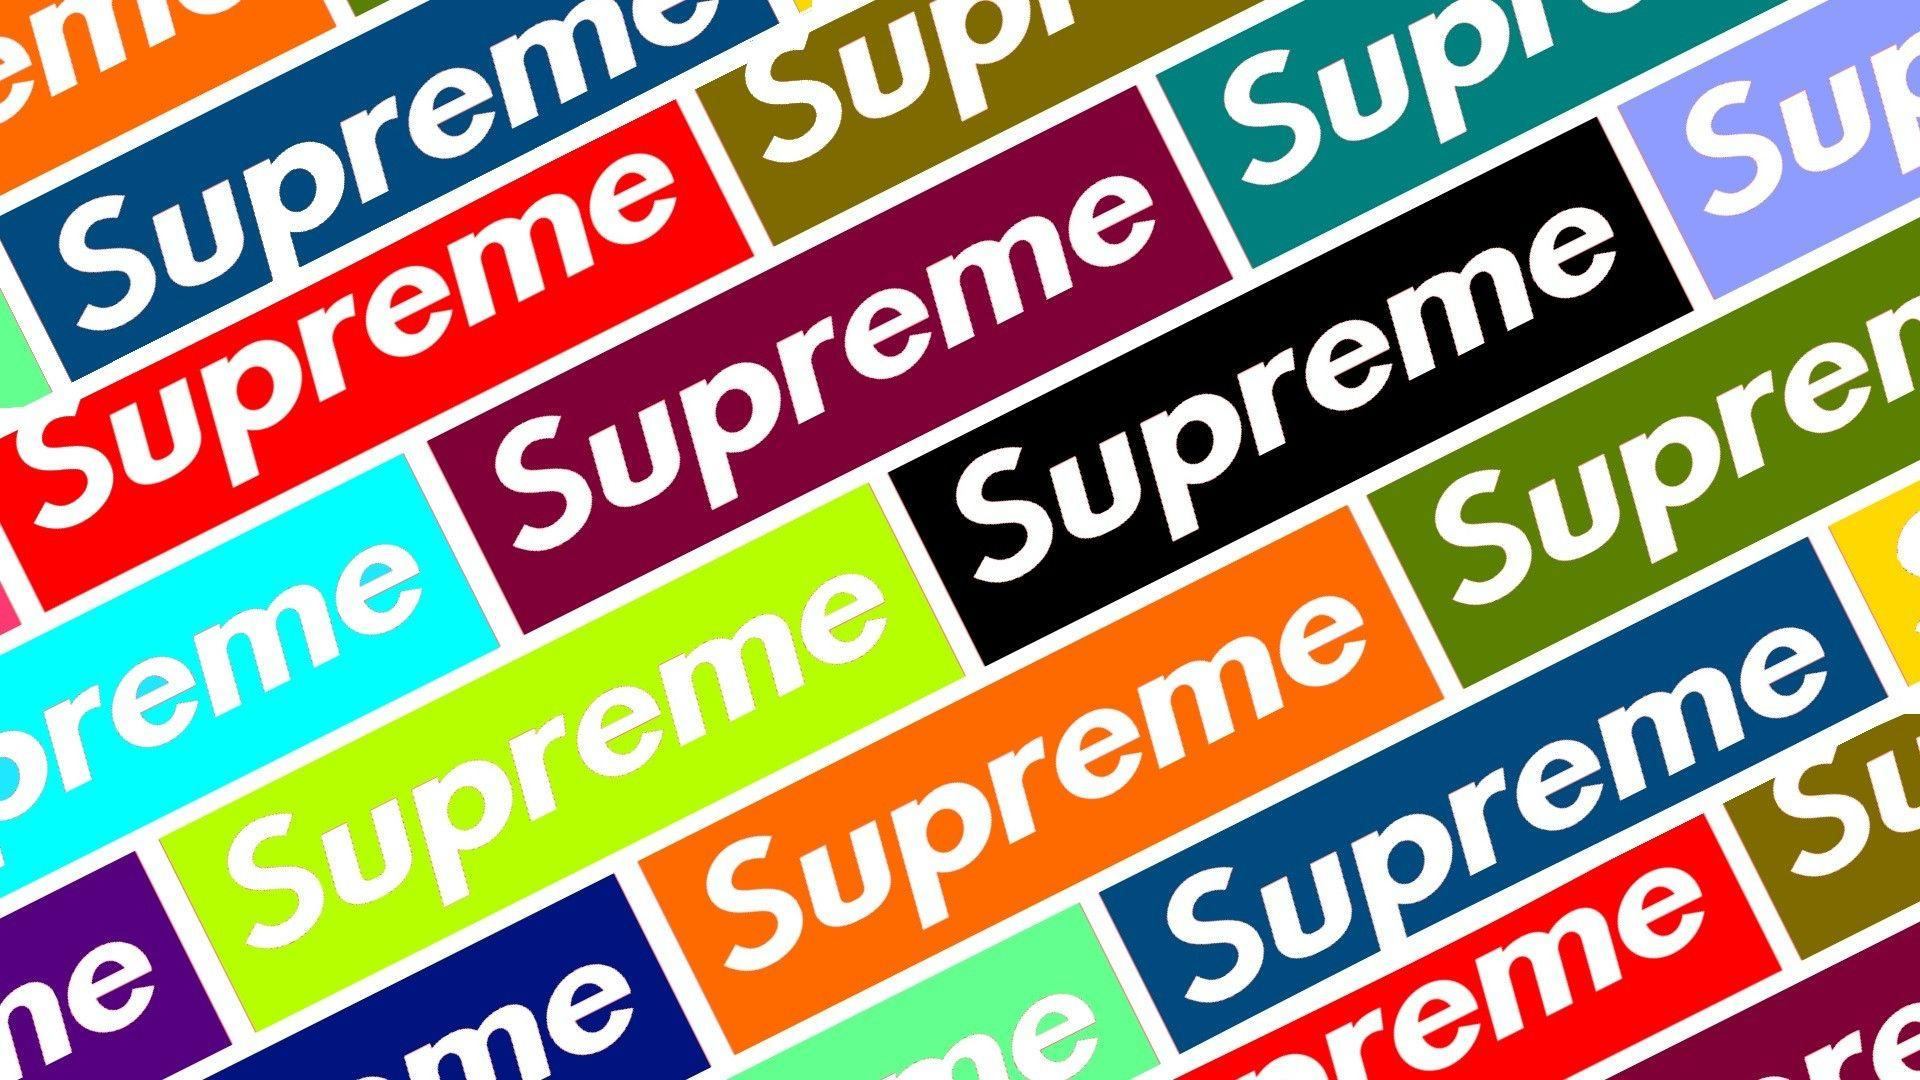 144adc998e89 Supreme background ·① Download free backgrounds for desktop and .